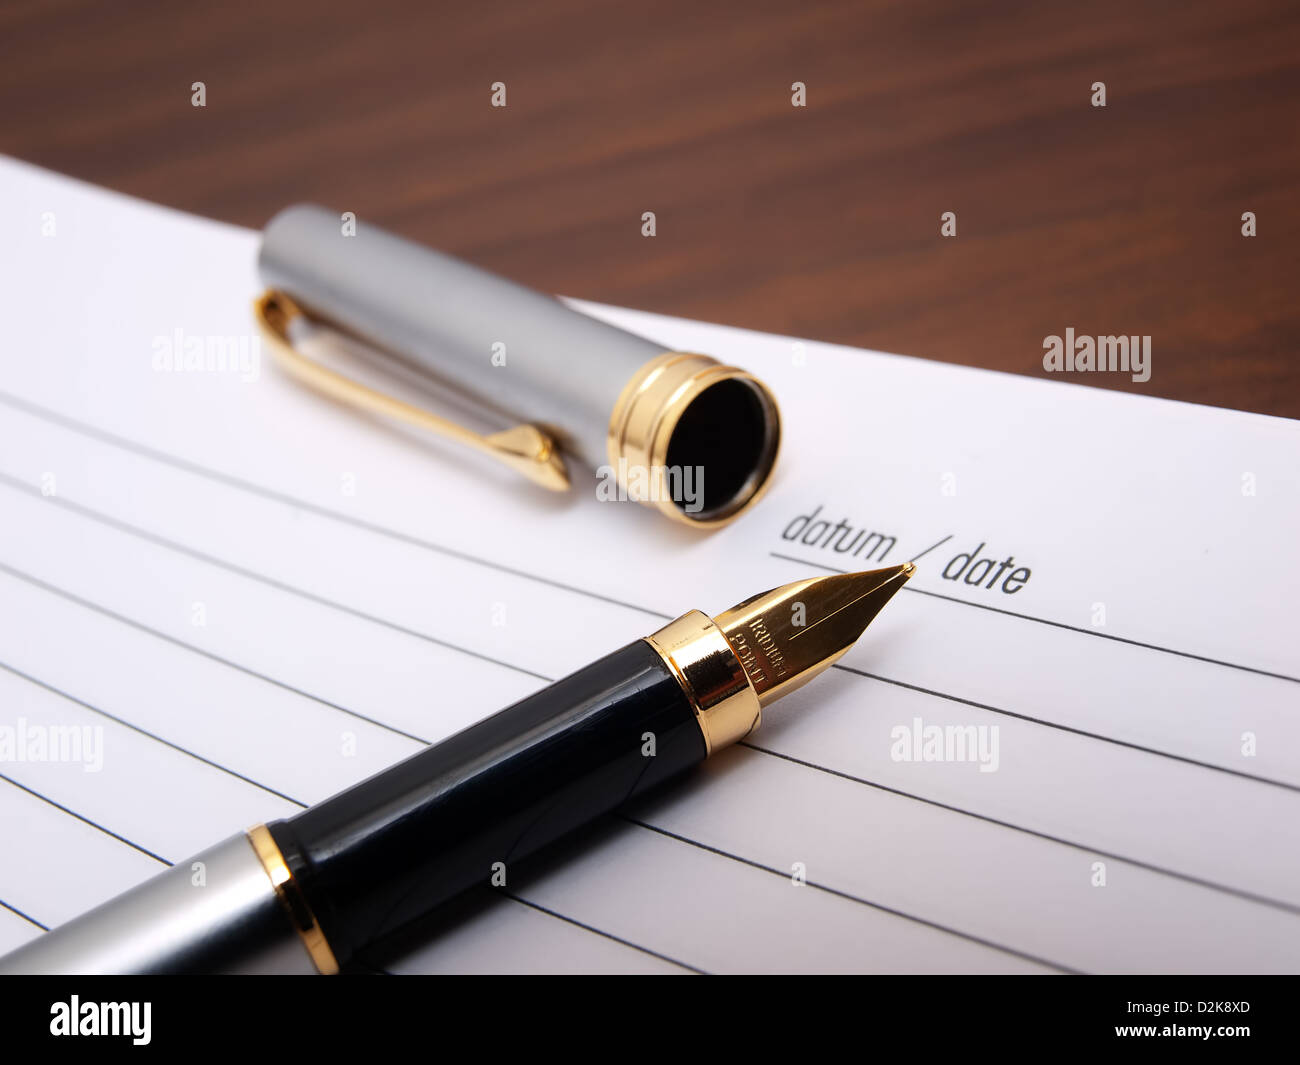 Closeup view of a fountain pen and diary book. - Stock Image